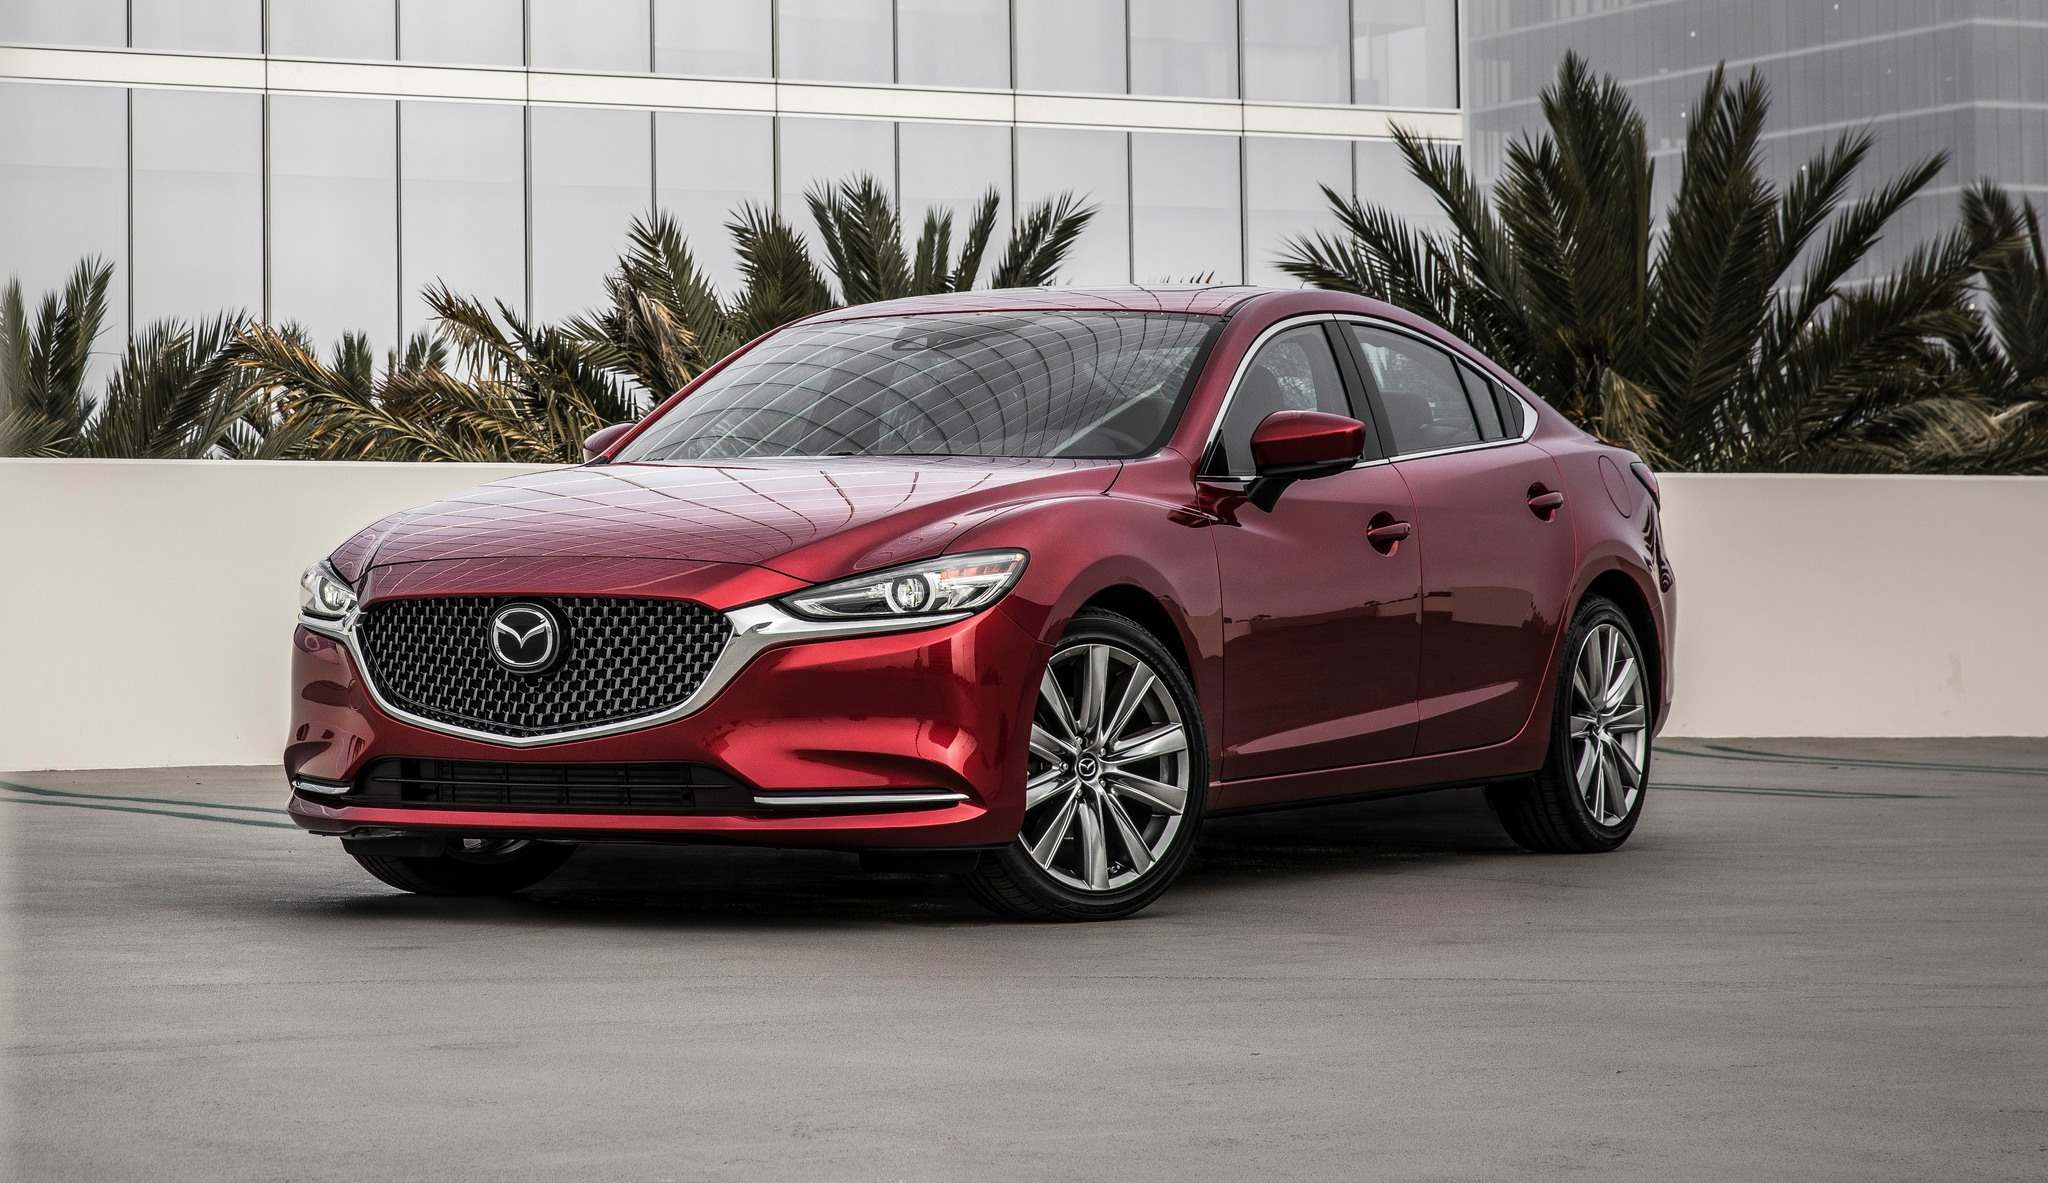 MazdaThere are enough changes made to the Mazda6 for 2018 that it could qualify as a redesign, but it would take a knowledgeable observer to spot the changes from the outside.